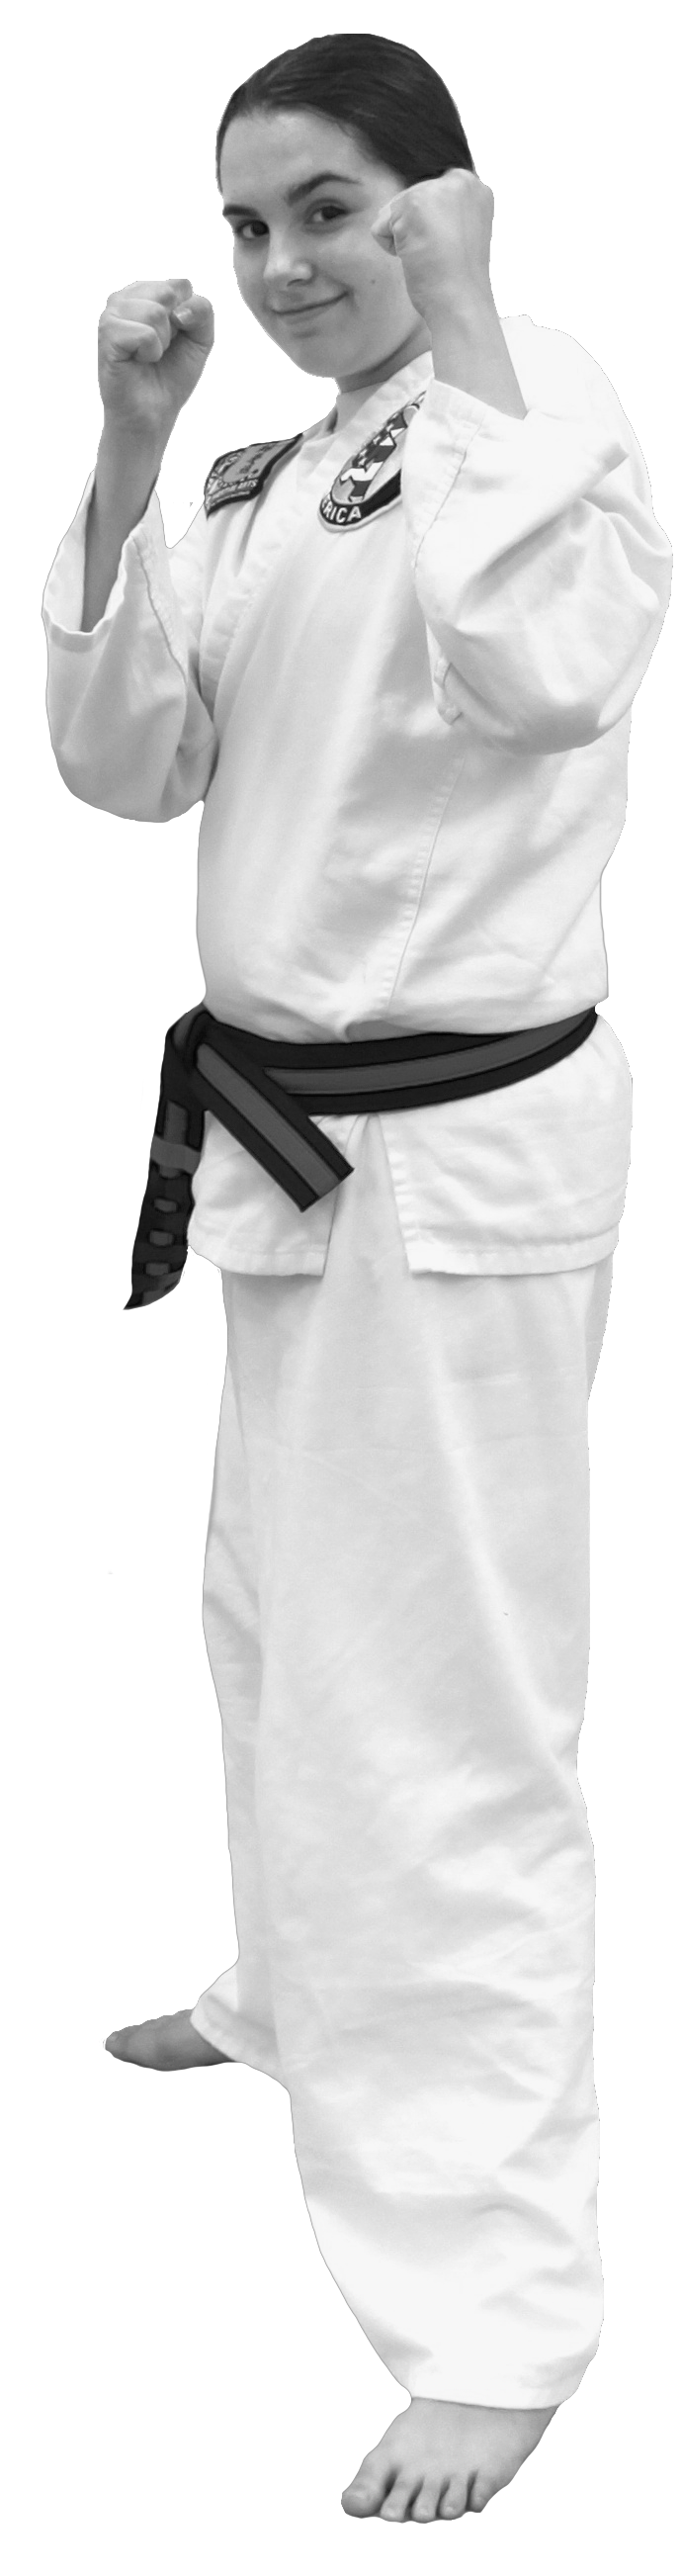 Miss Bailee Hach has been training with Spicar's Martial Arts in Southlake TX since summer 2010. Together with her sister Rylee they will be trying to earn their 1st Degree Black Belt in August 2013. Congrats and good luck!